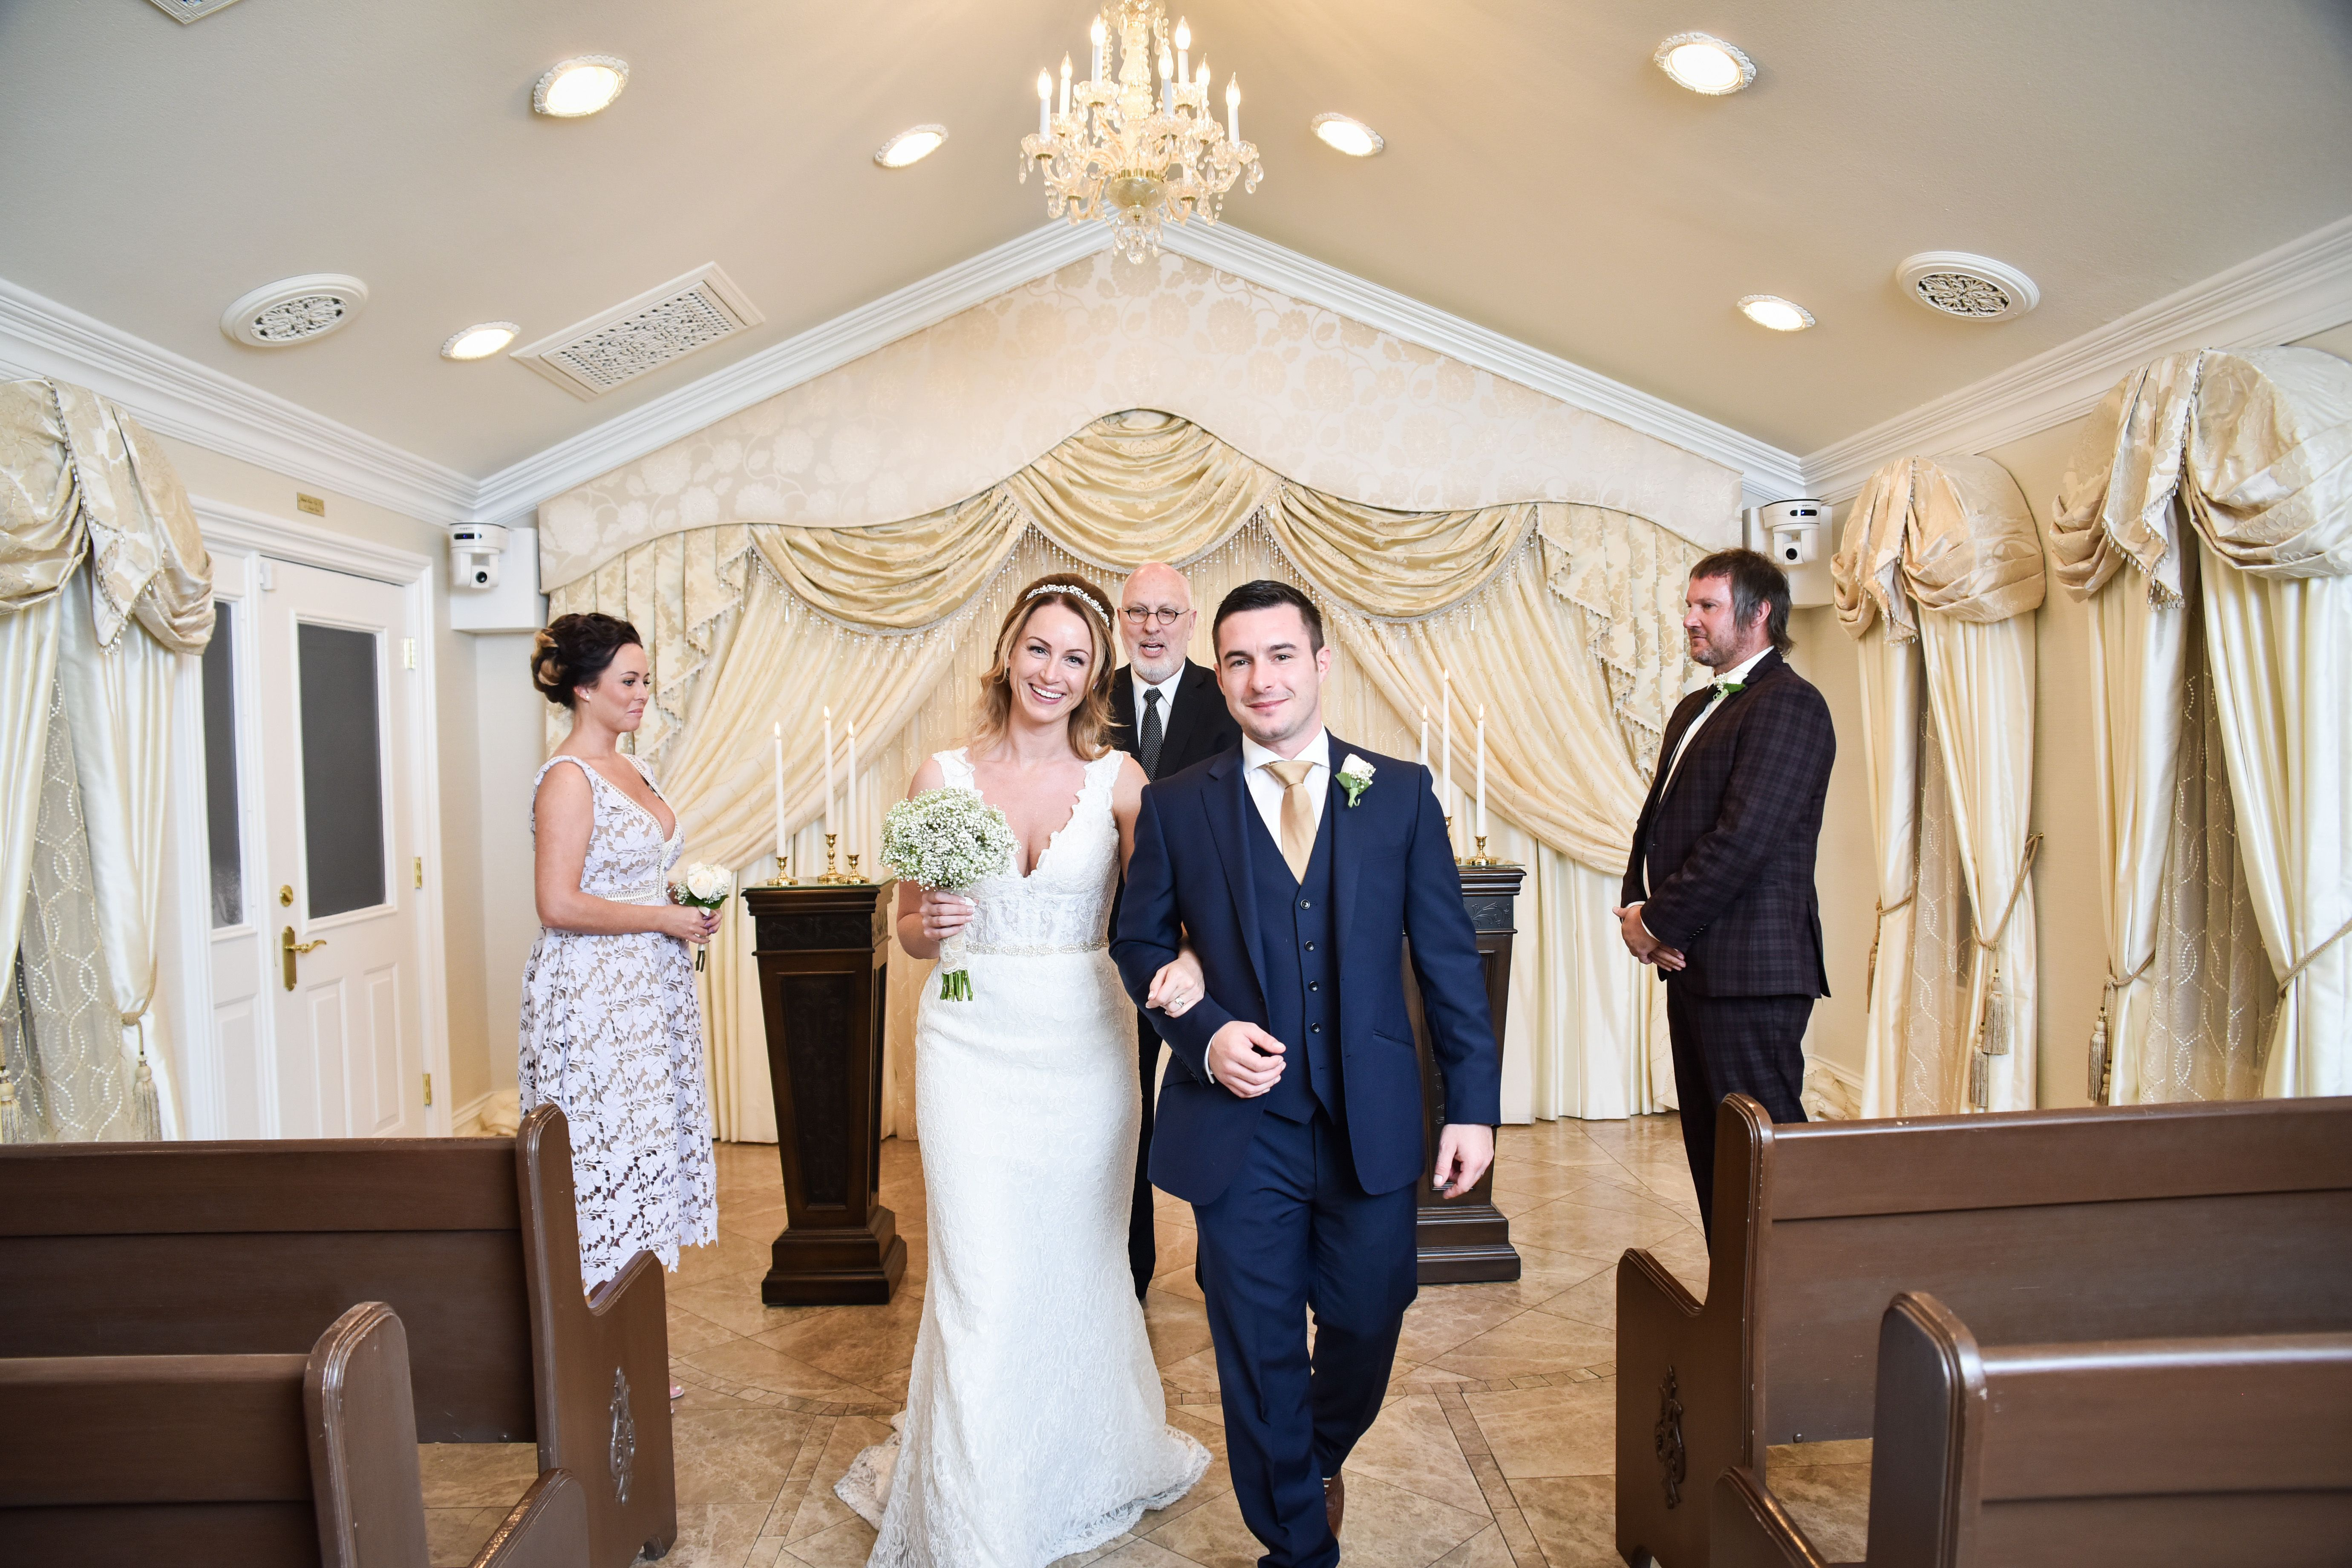 Say I Do For Under 1000 In Las Vegas All Inclusive Wedding